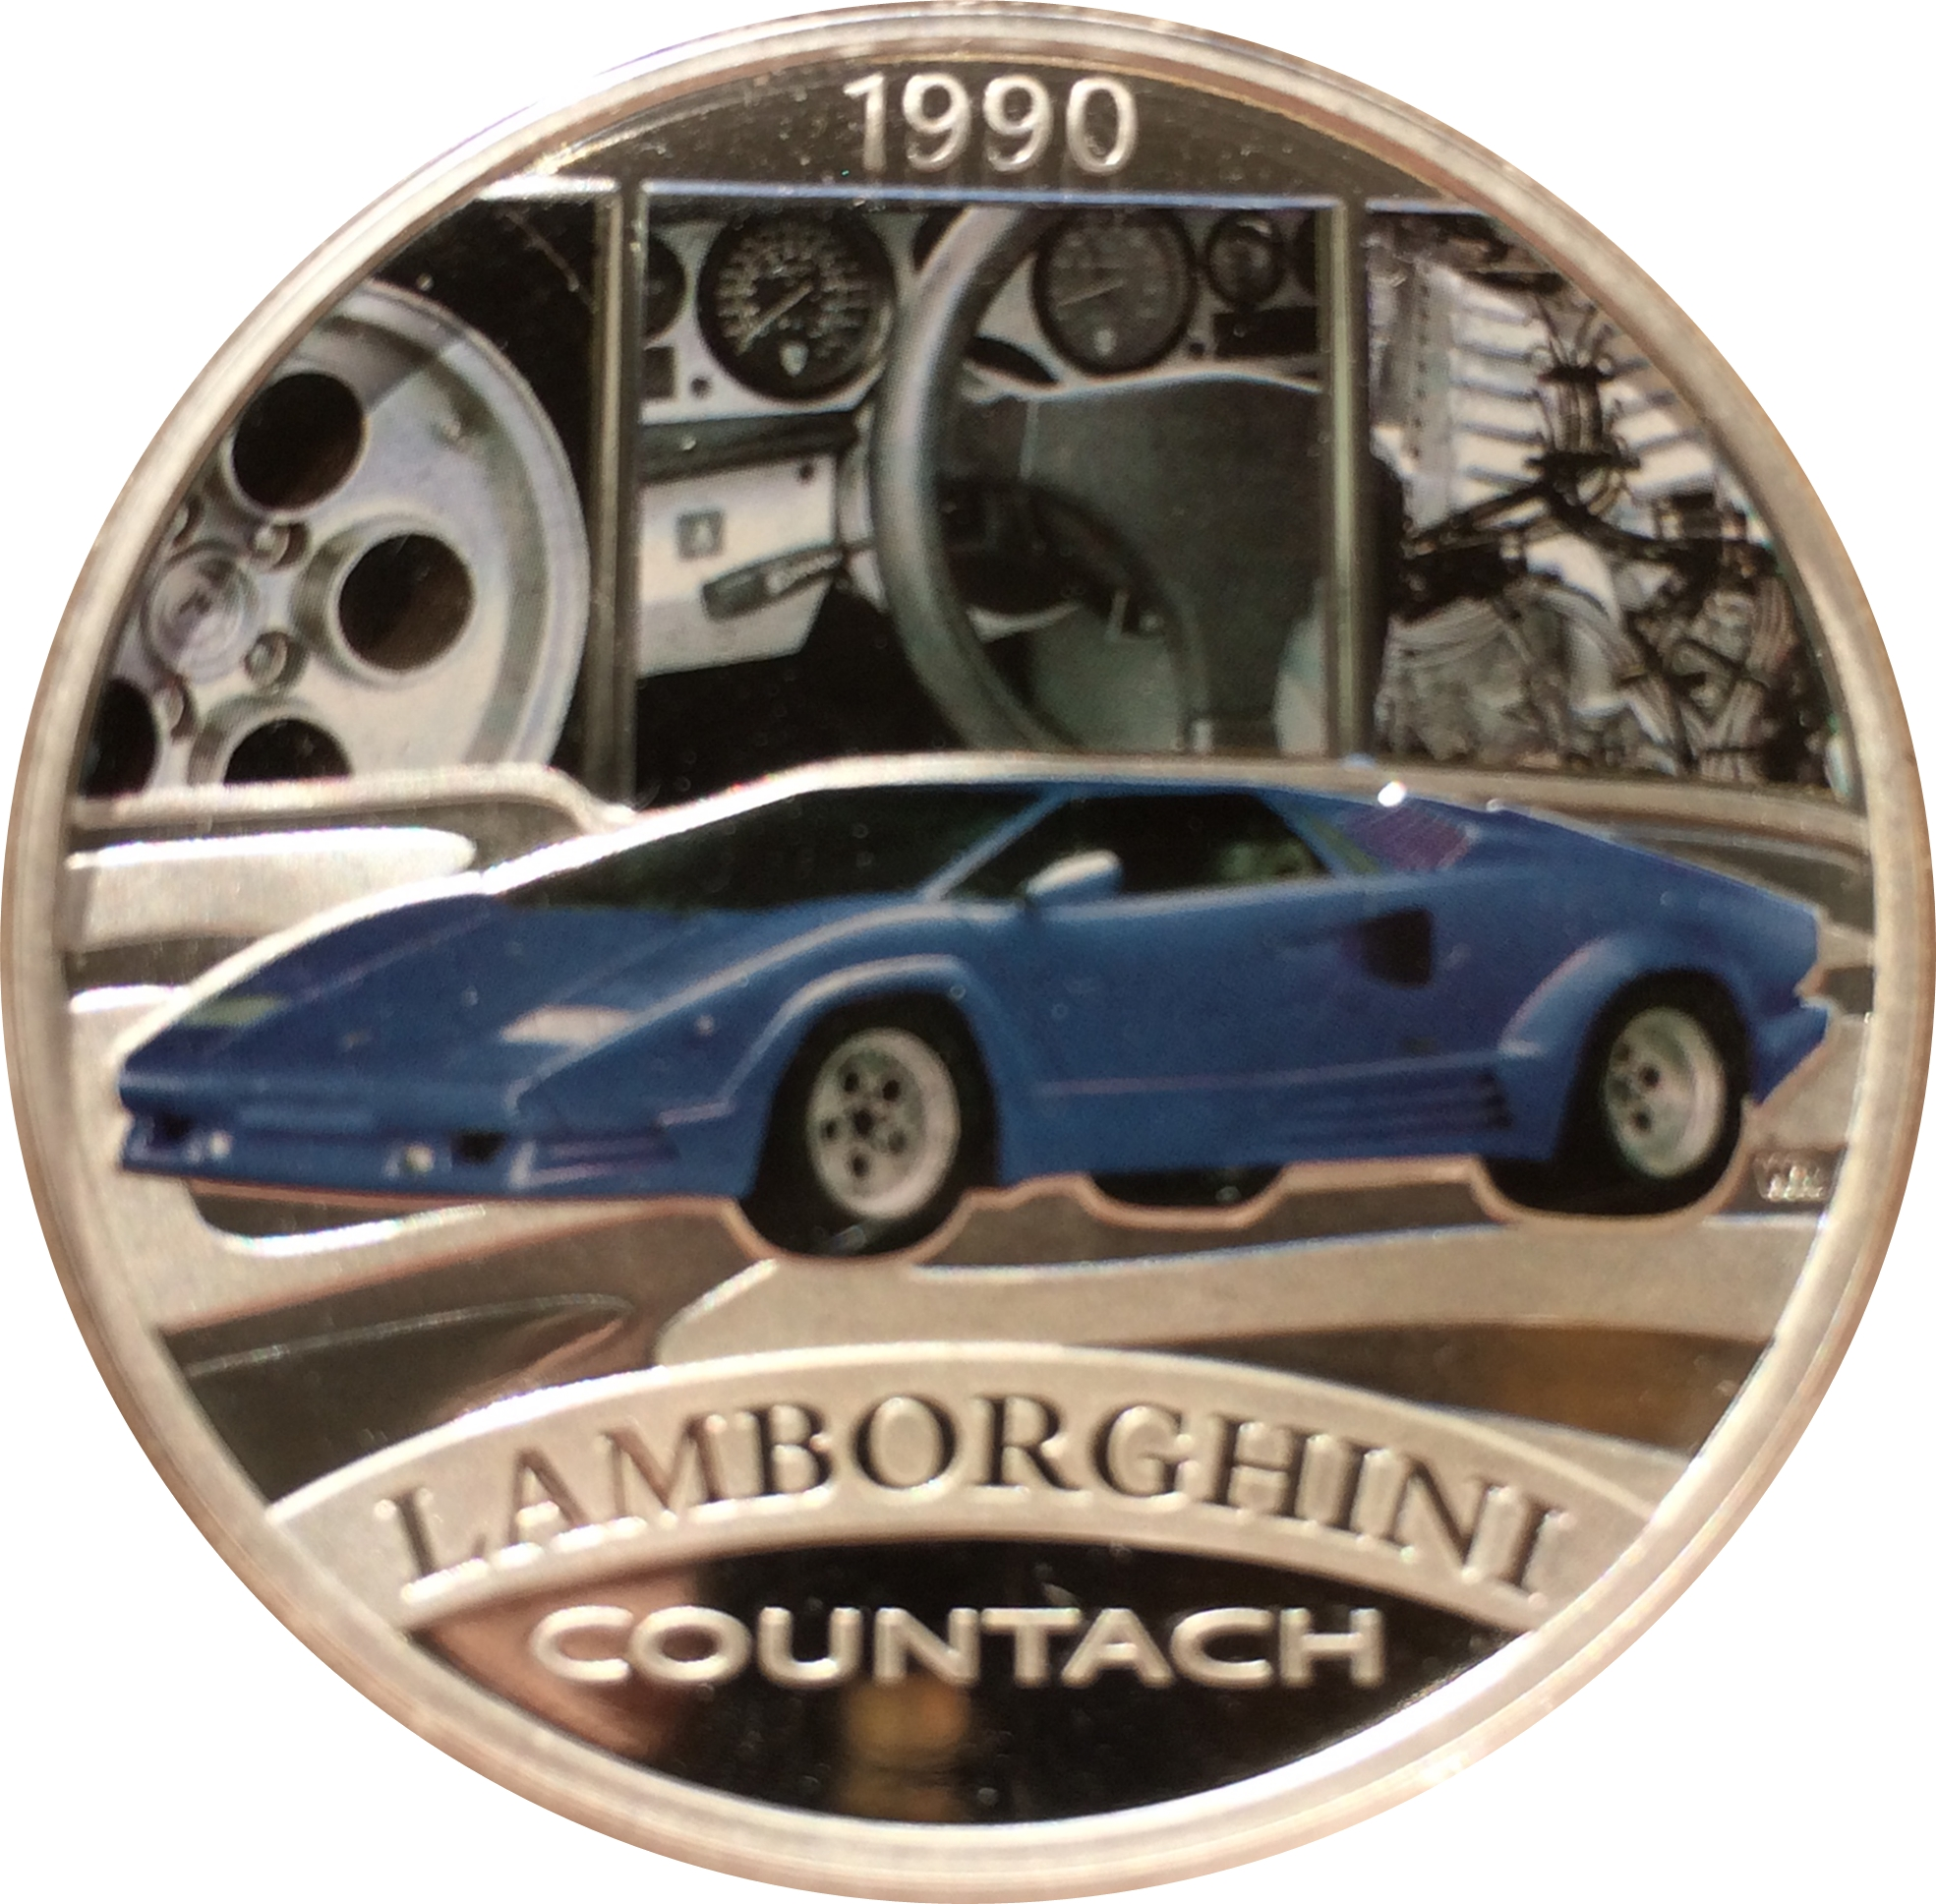 Lamborghini Countach for Sale / Page #4 of 18 / Find or ...  |Lamborghini Countach Reverse